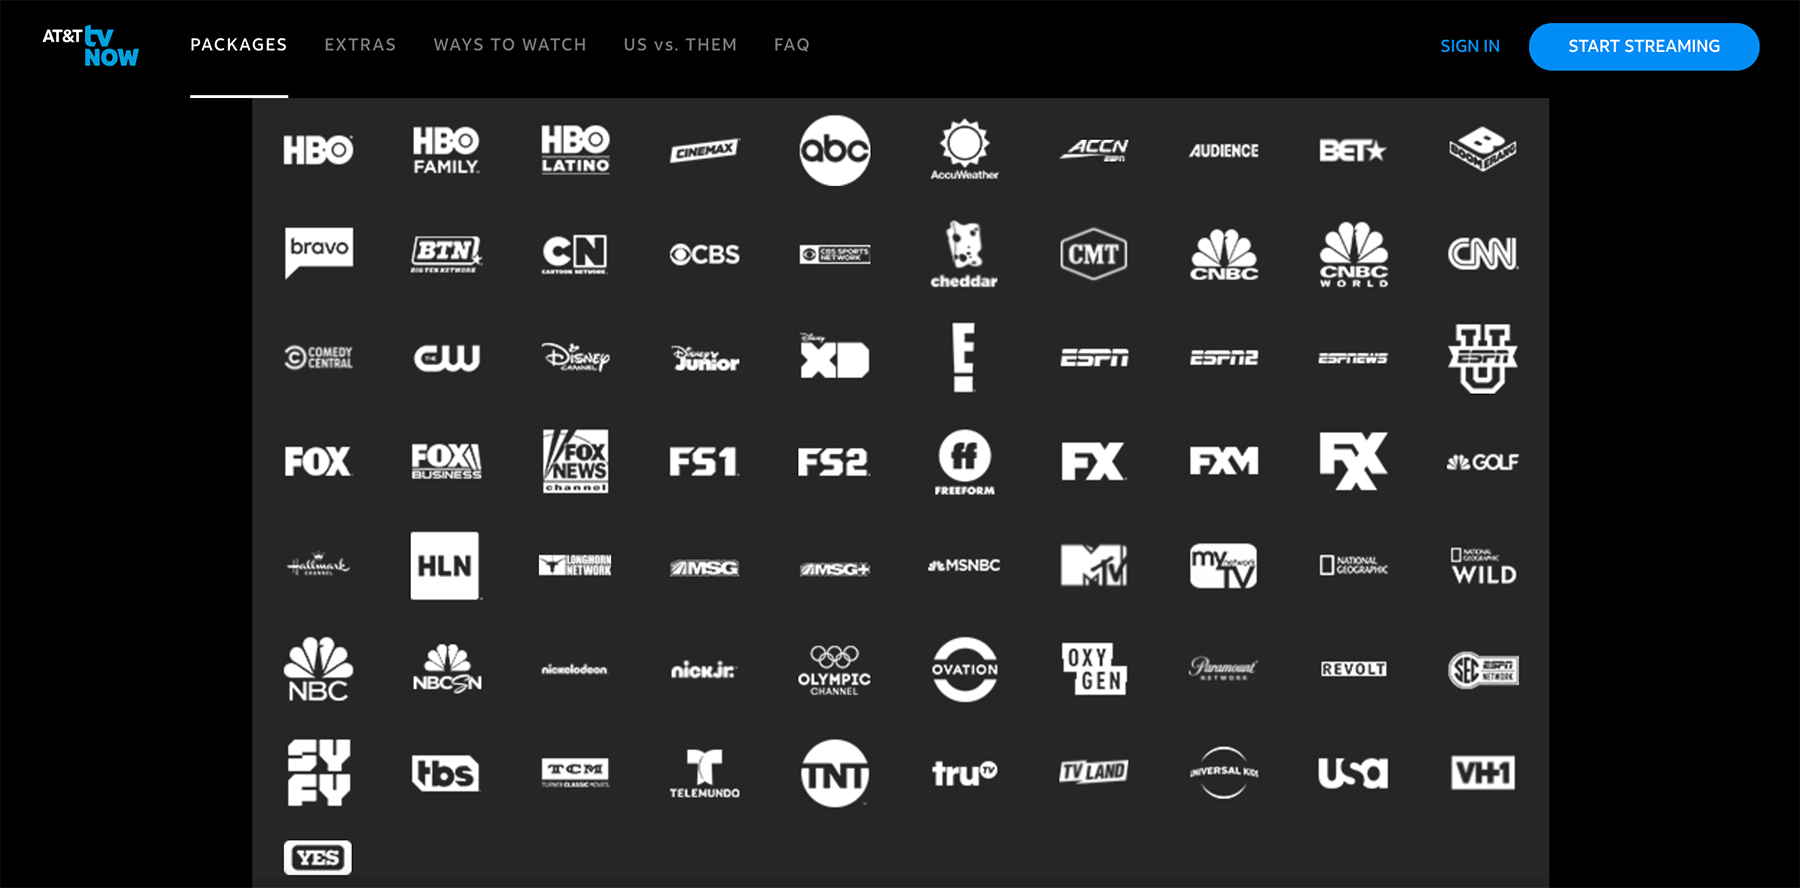 AT&T TV Now channels